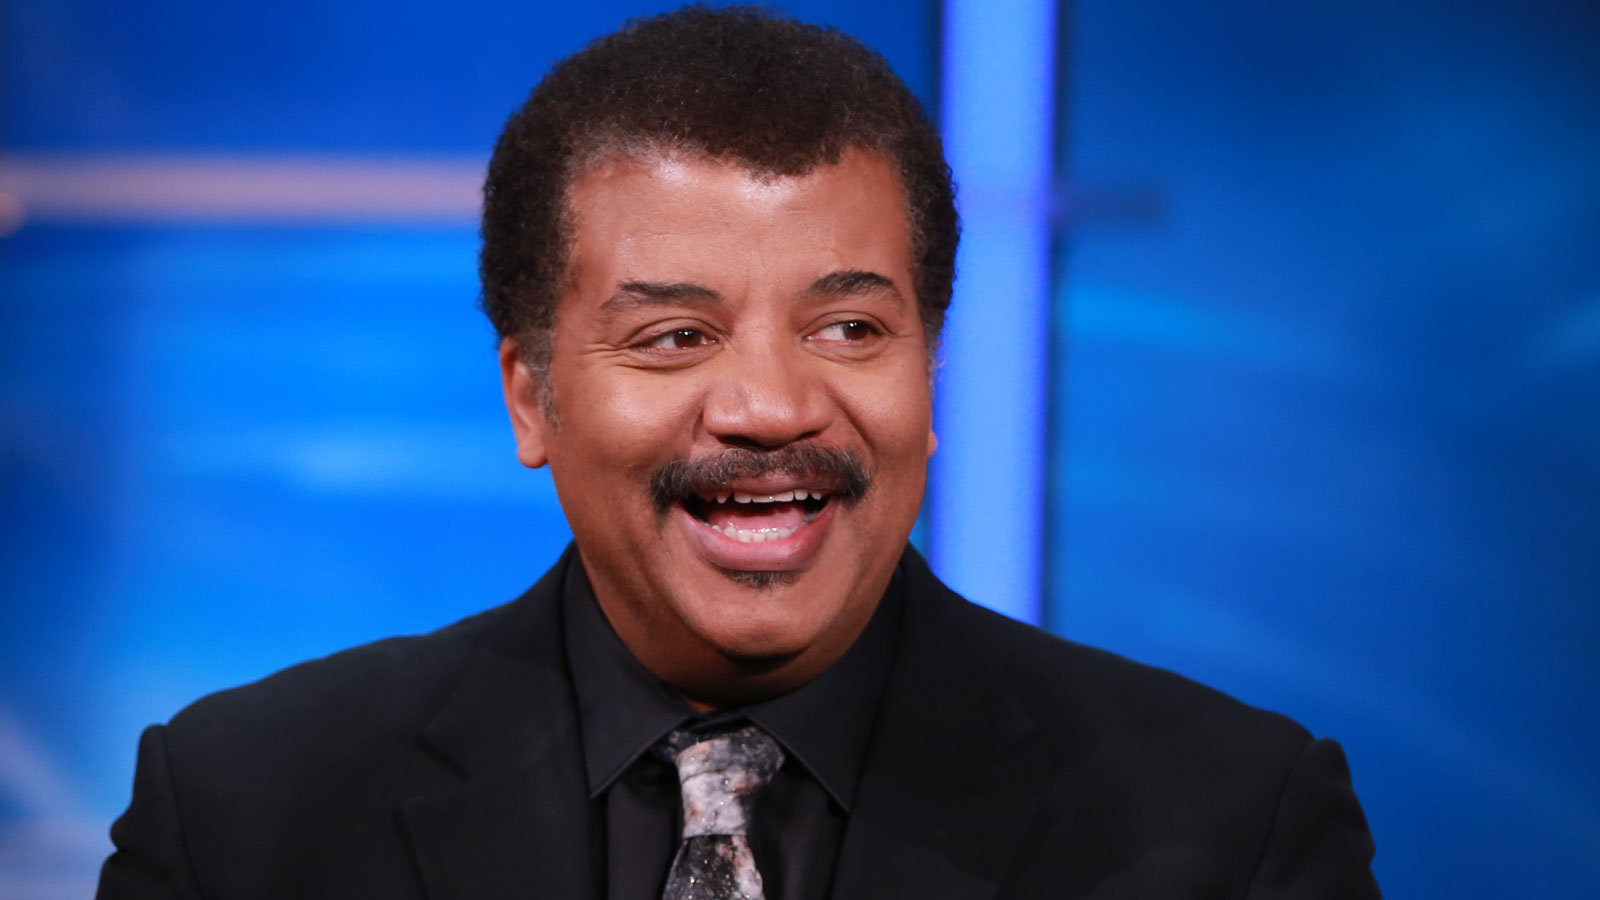 neil-degrasse-tyson-beer-FT-BLOG0617.jpg